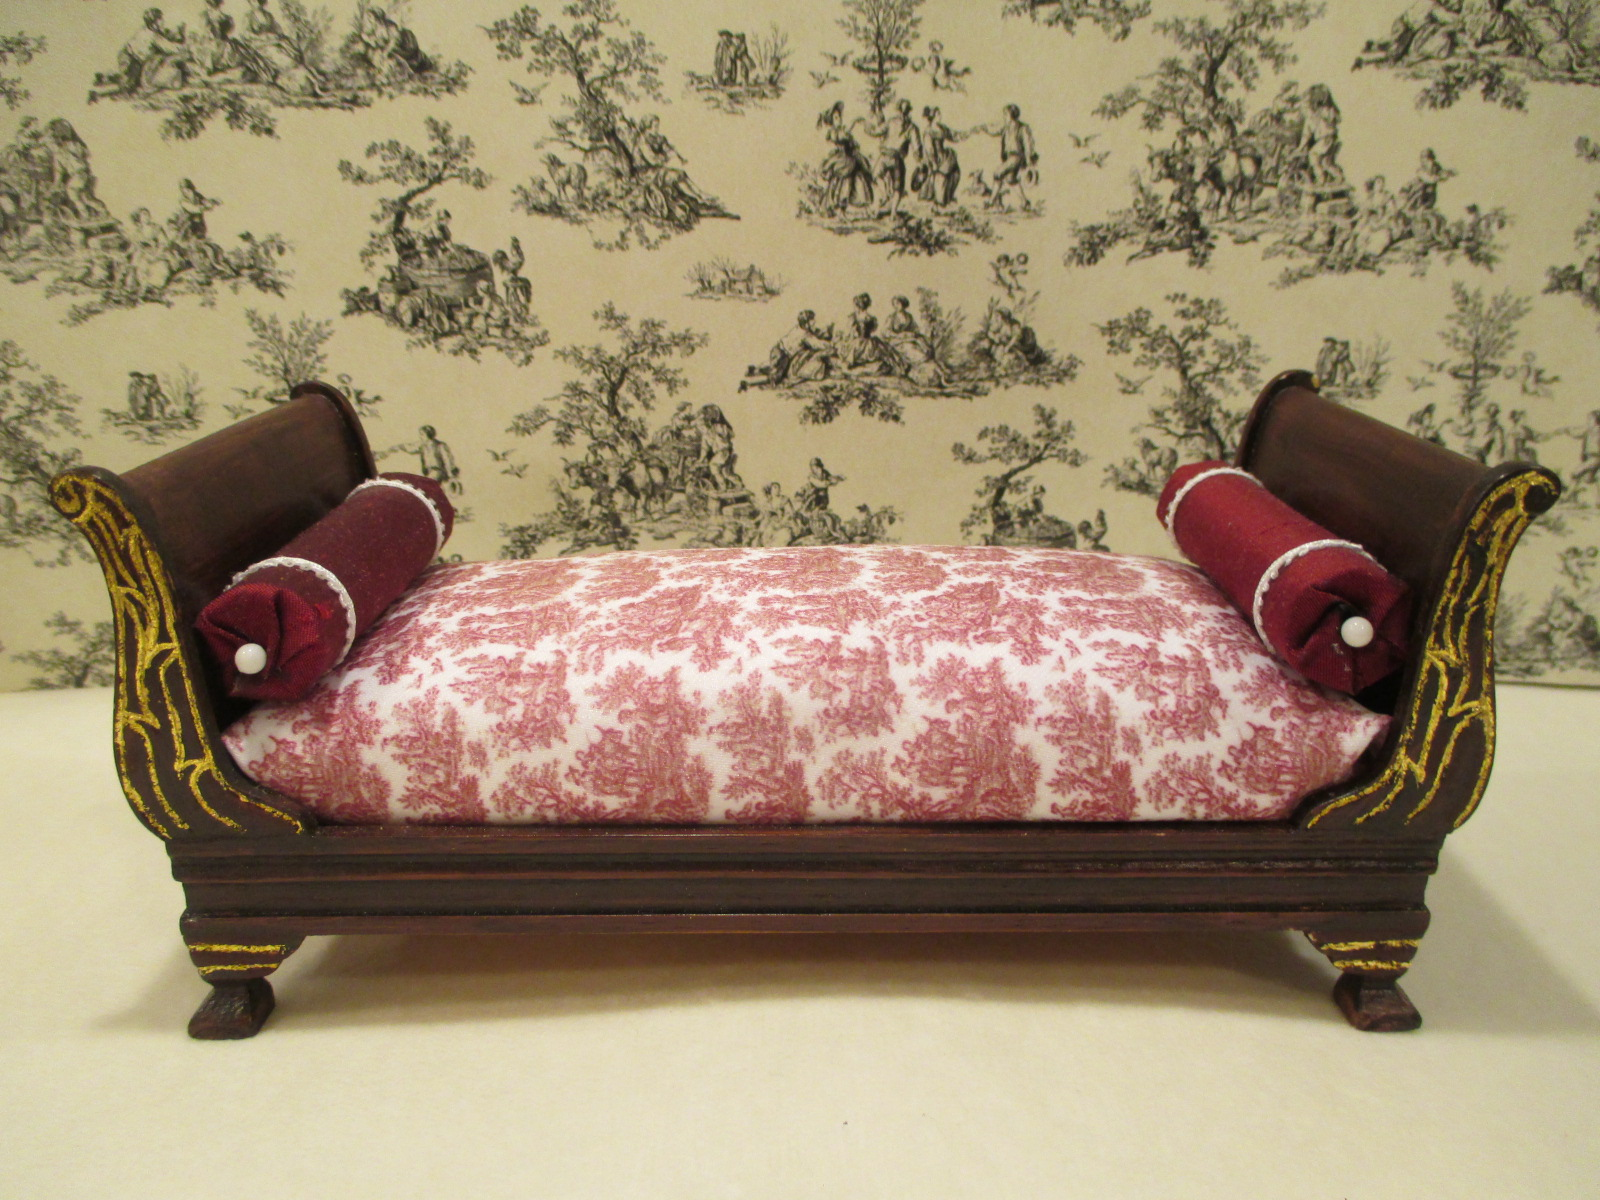 Bedroom Day Bed With Red Toile Fabric W 2 Bolster Pillows